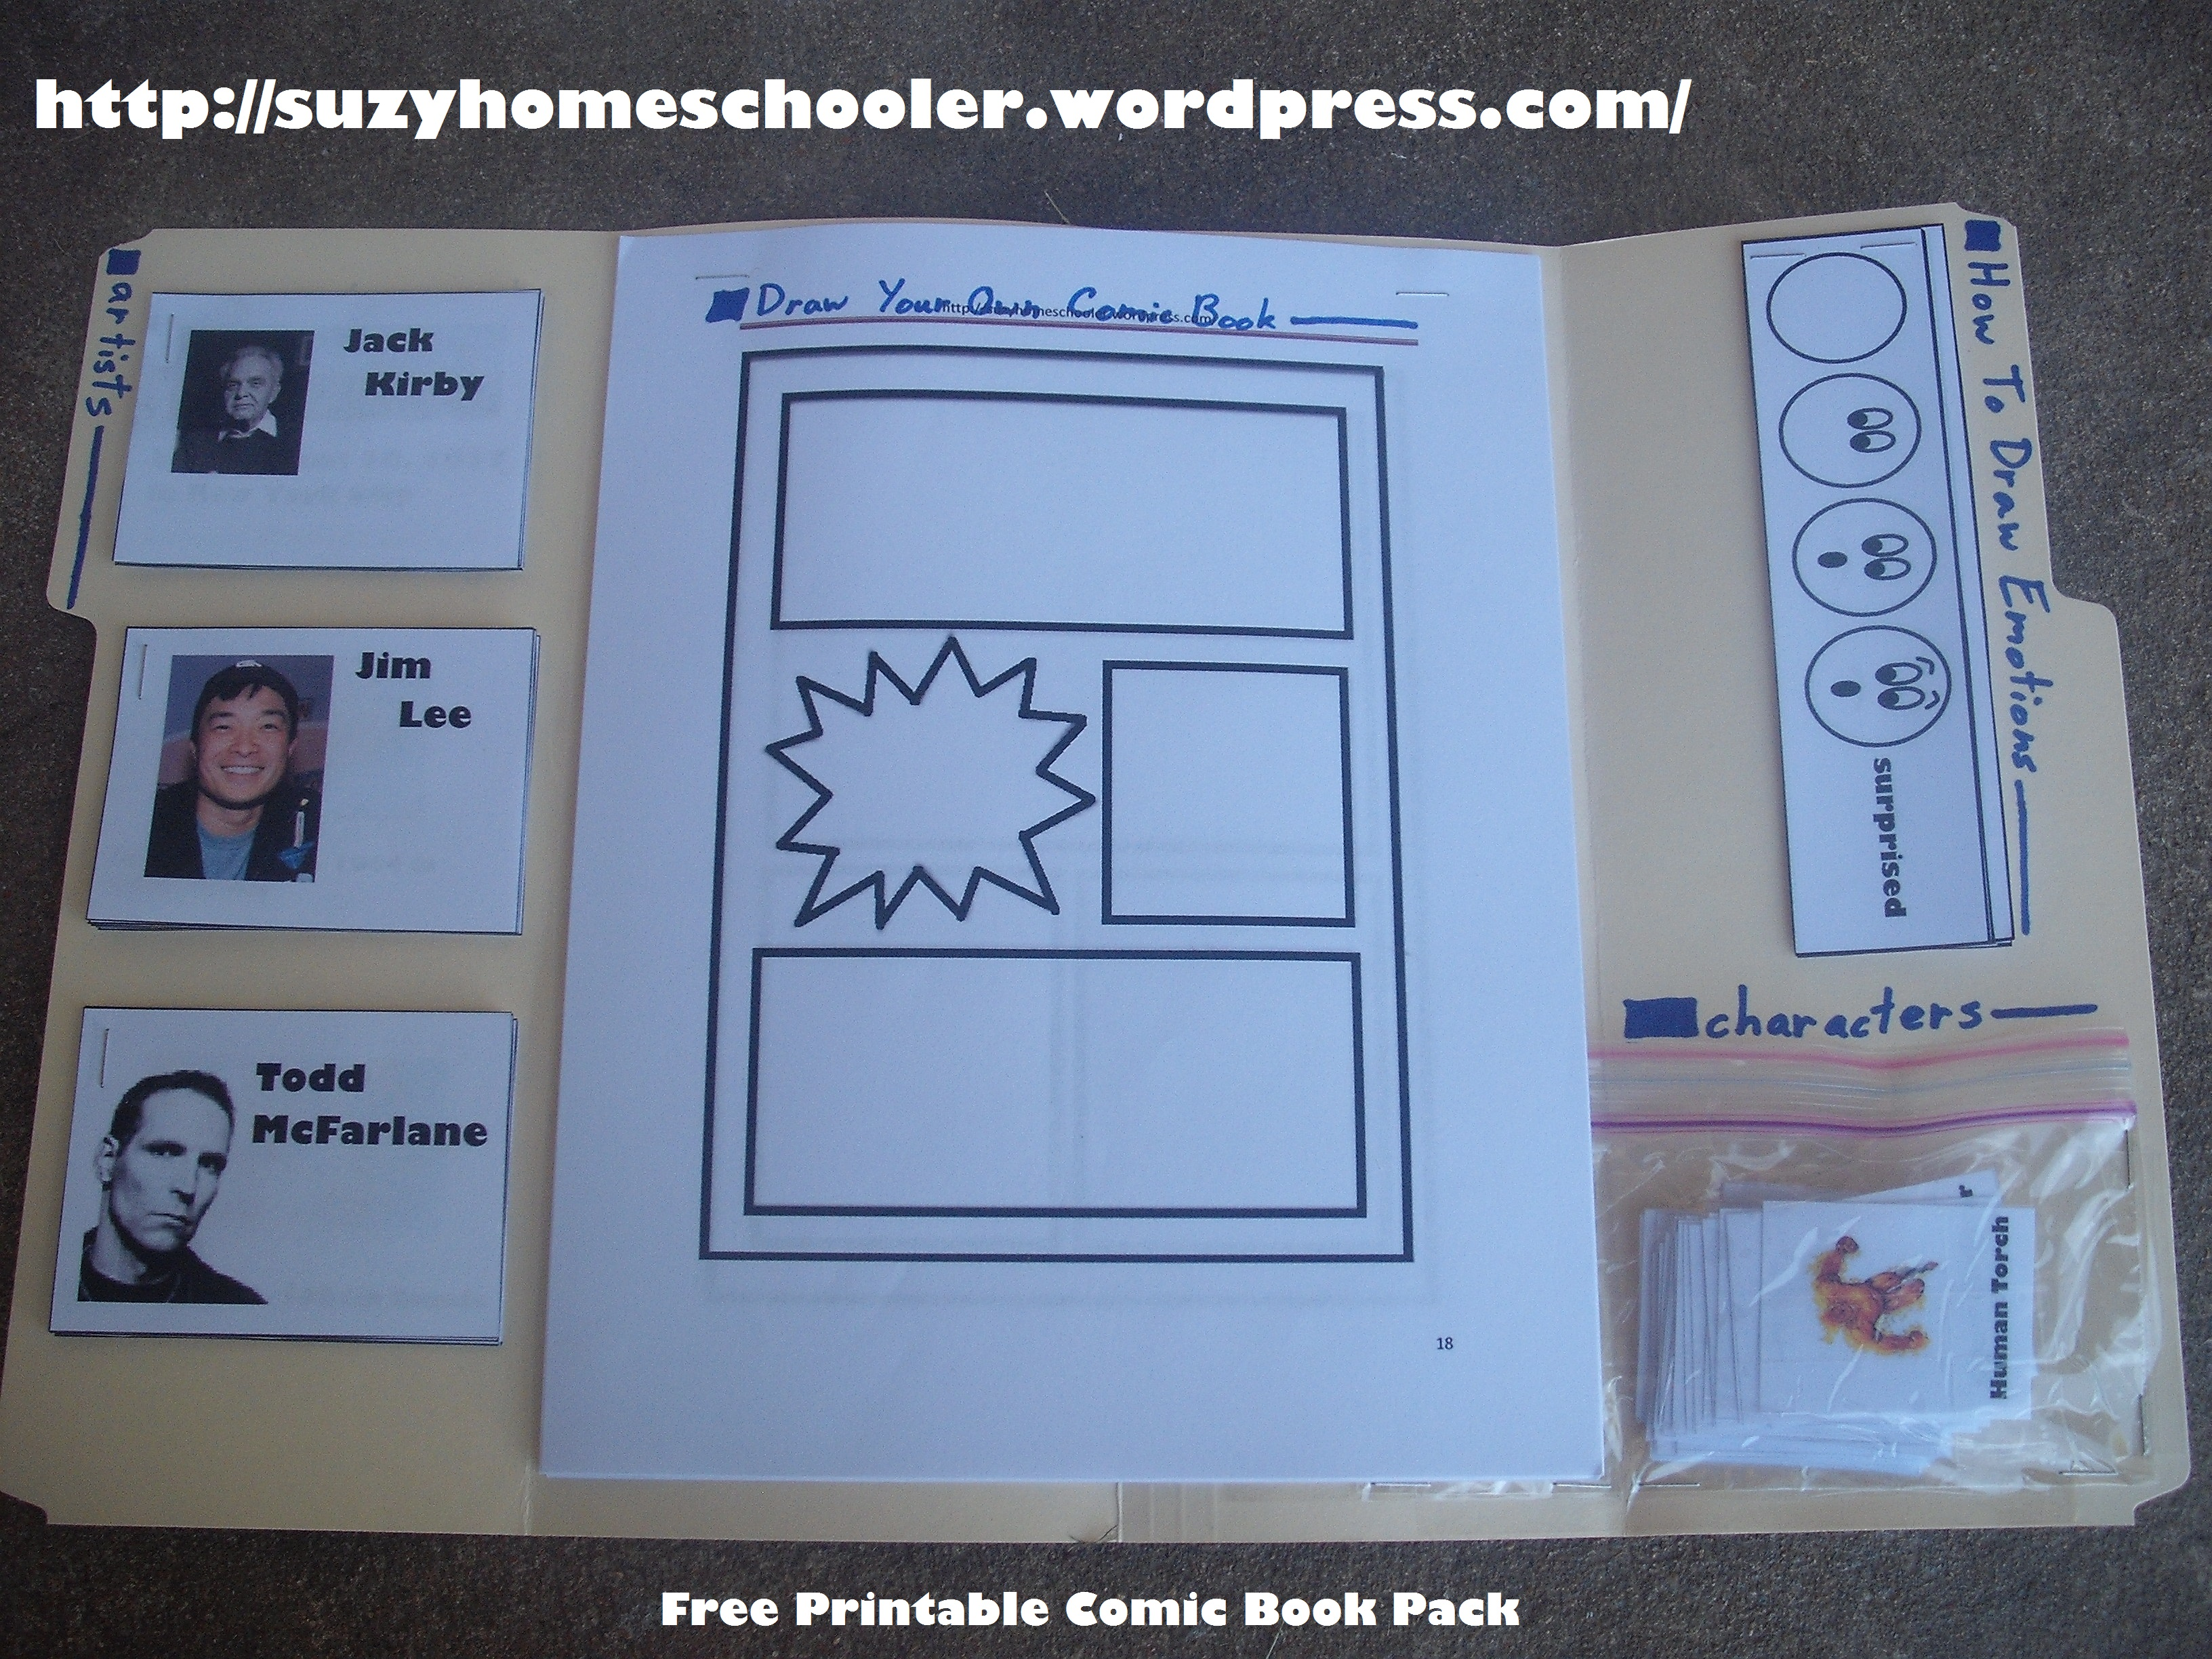 Free Printable Comic Book Pack Suzy Homeschooler